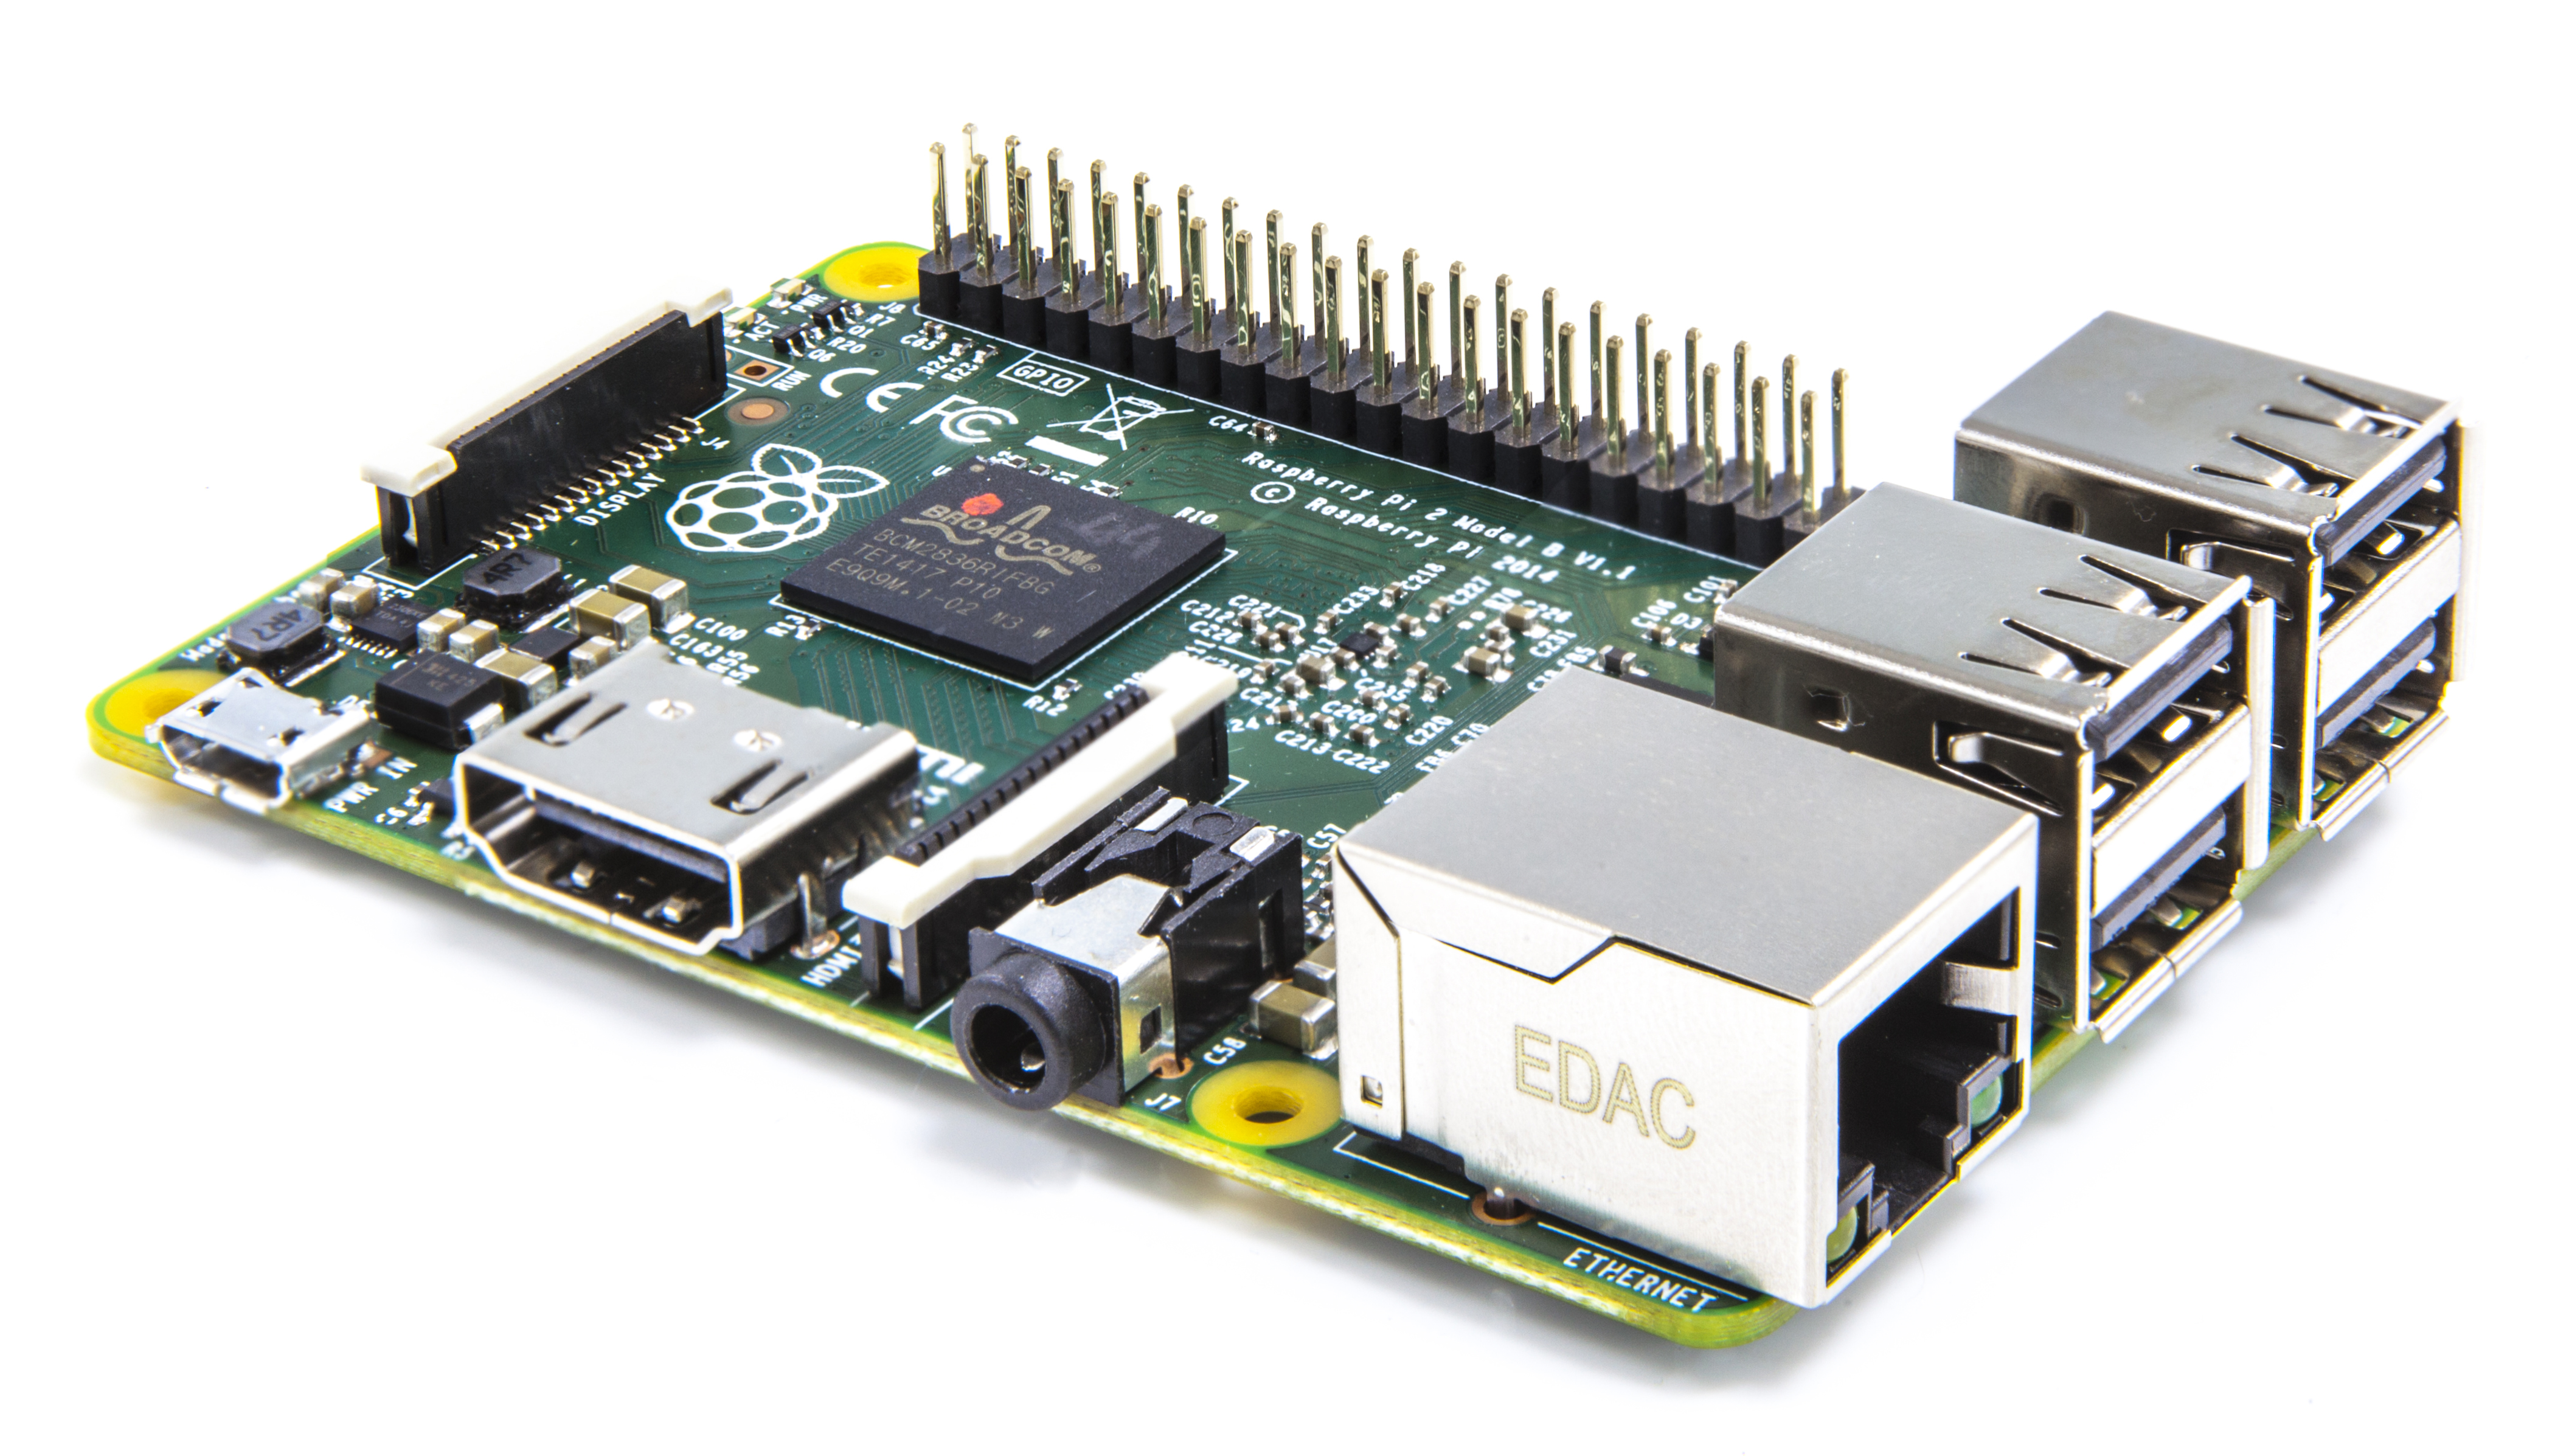 Raspberry Pi On Sale Now At Raspberry Pi - Raspberry minecraft spielen